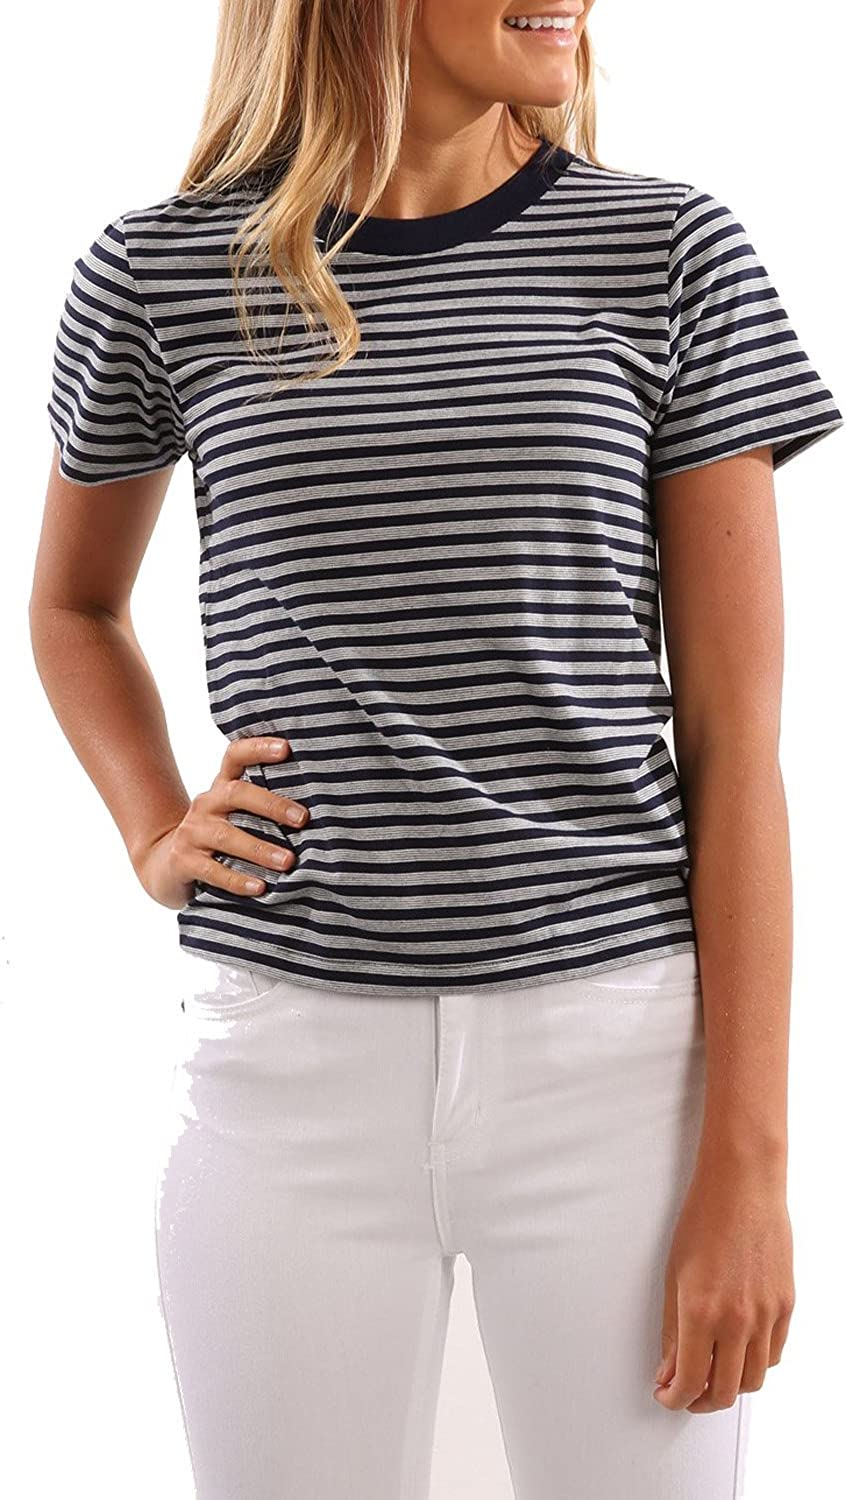 Blooming Jelly Women's Round Neck Casual Loose Short Sleeve Striped T Shirt Top